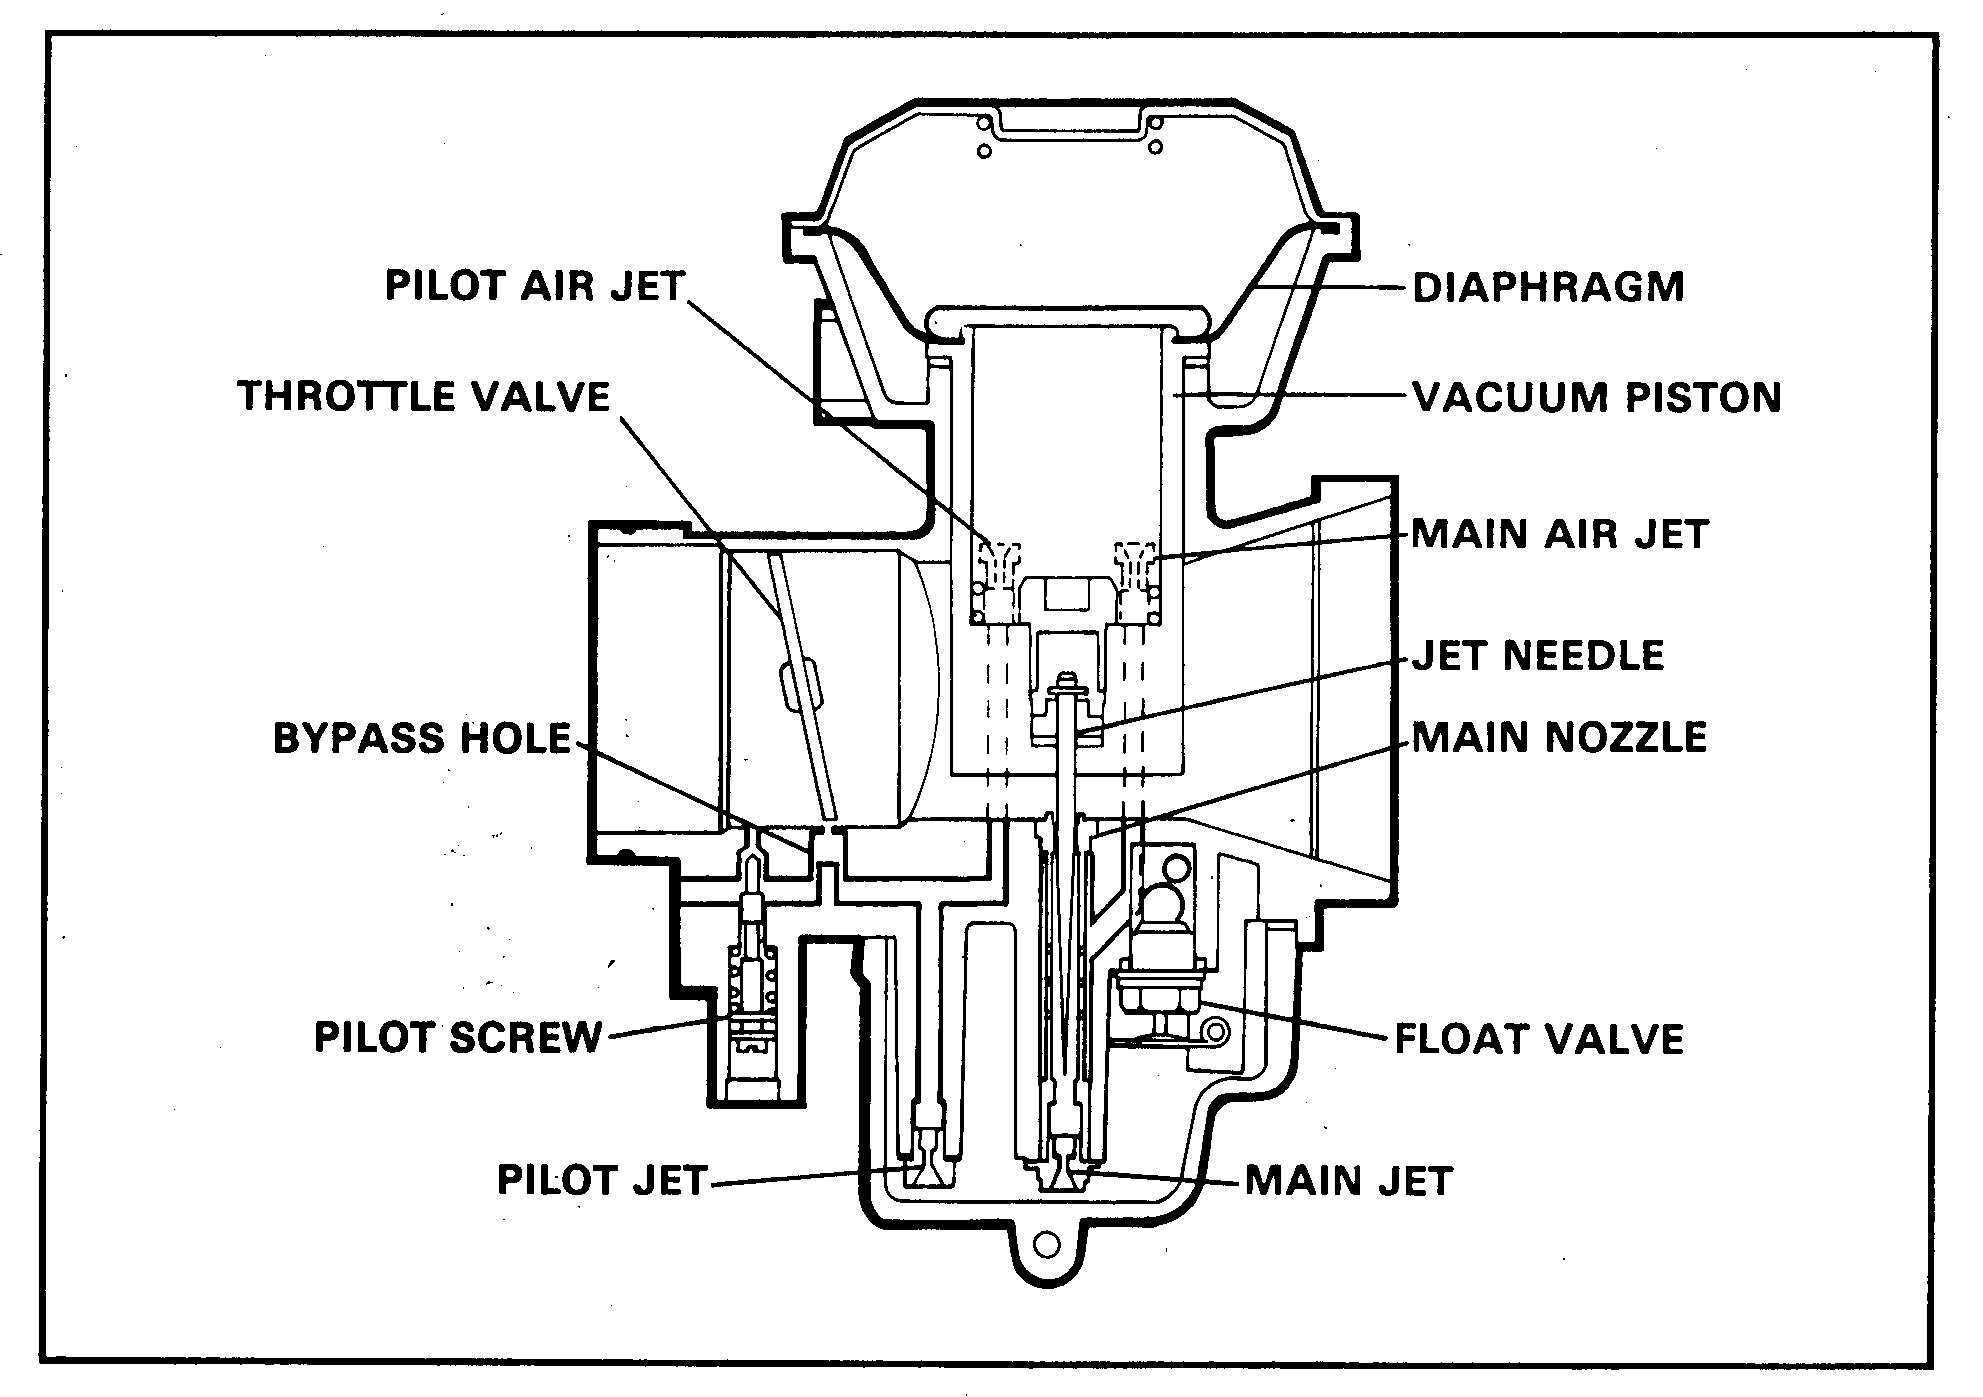 Hitachi Carb Diagram Wiring Libraries Mercury 45 Jet Virago Carburetors Yamaha Viragohelp Comhitachi Version 1view